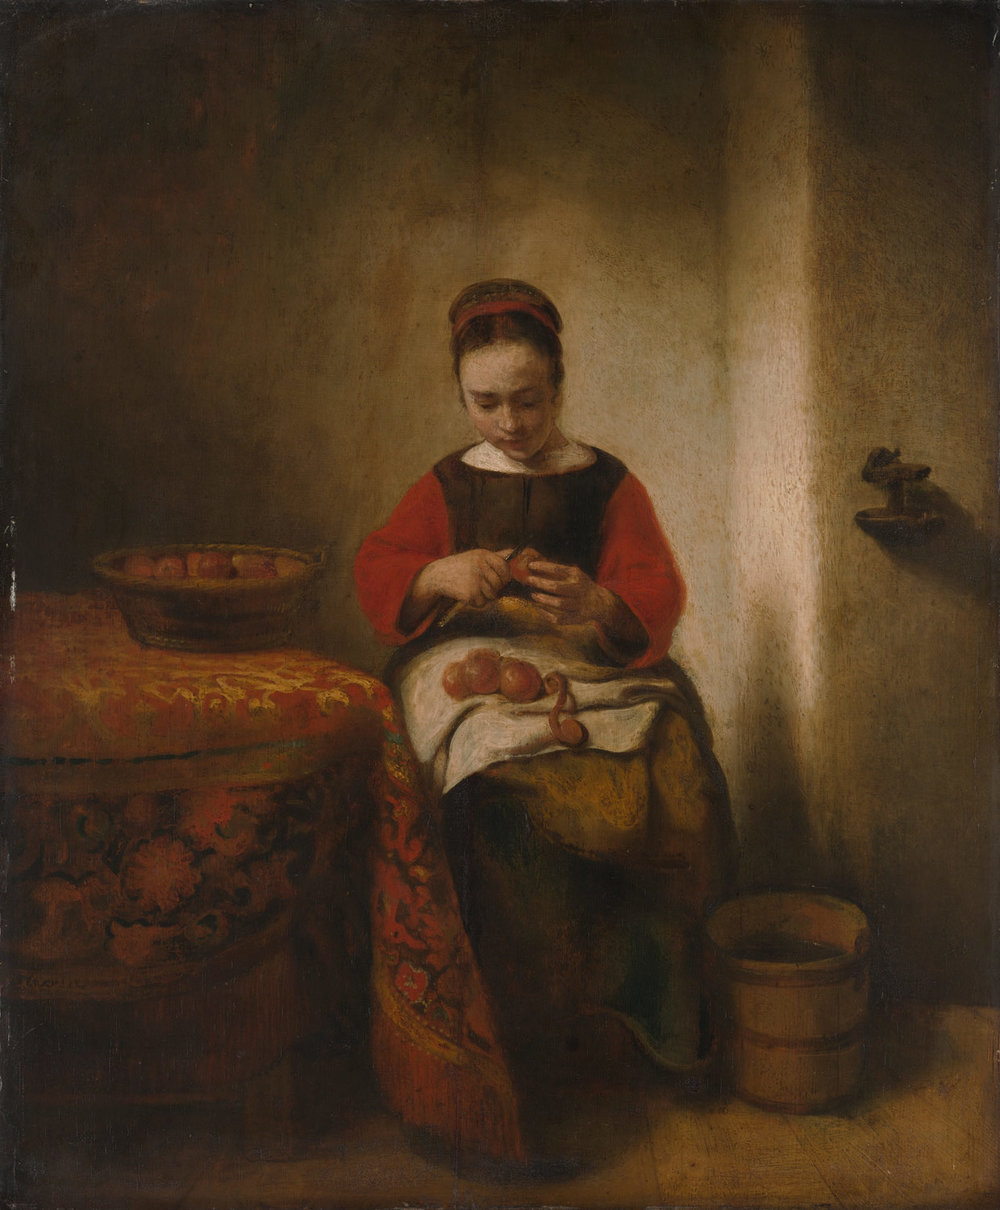 Young Woman Peeling Apples ~ Nicolaes Maes, Metropolitan Museum  [Full Poem, based on this picture  here]